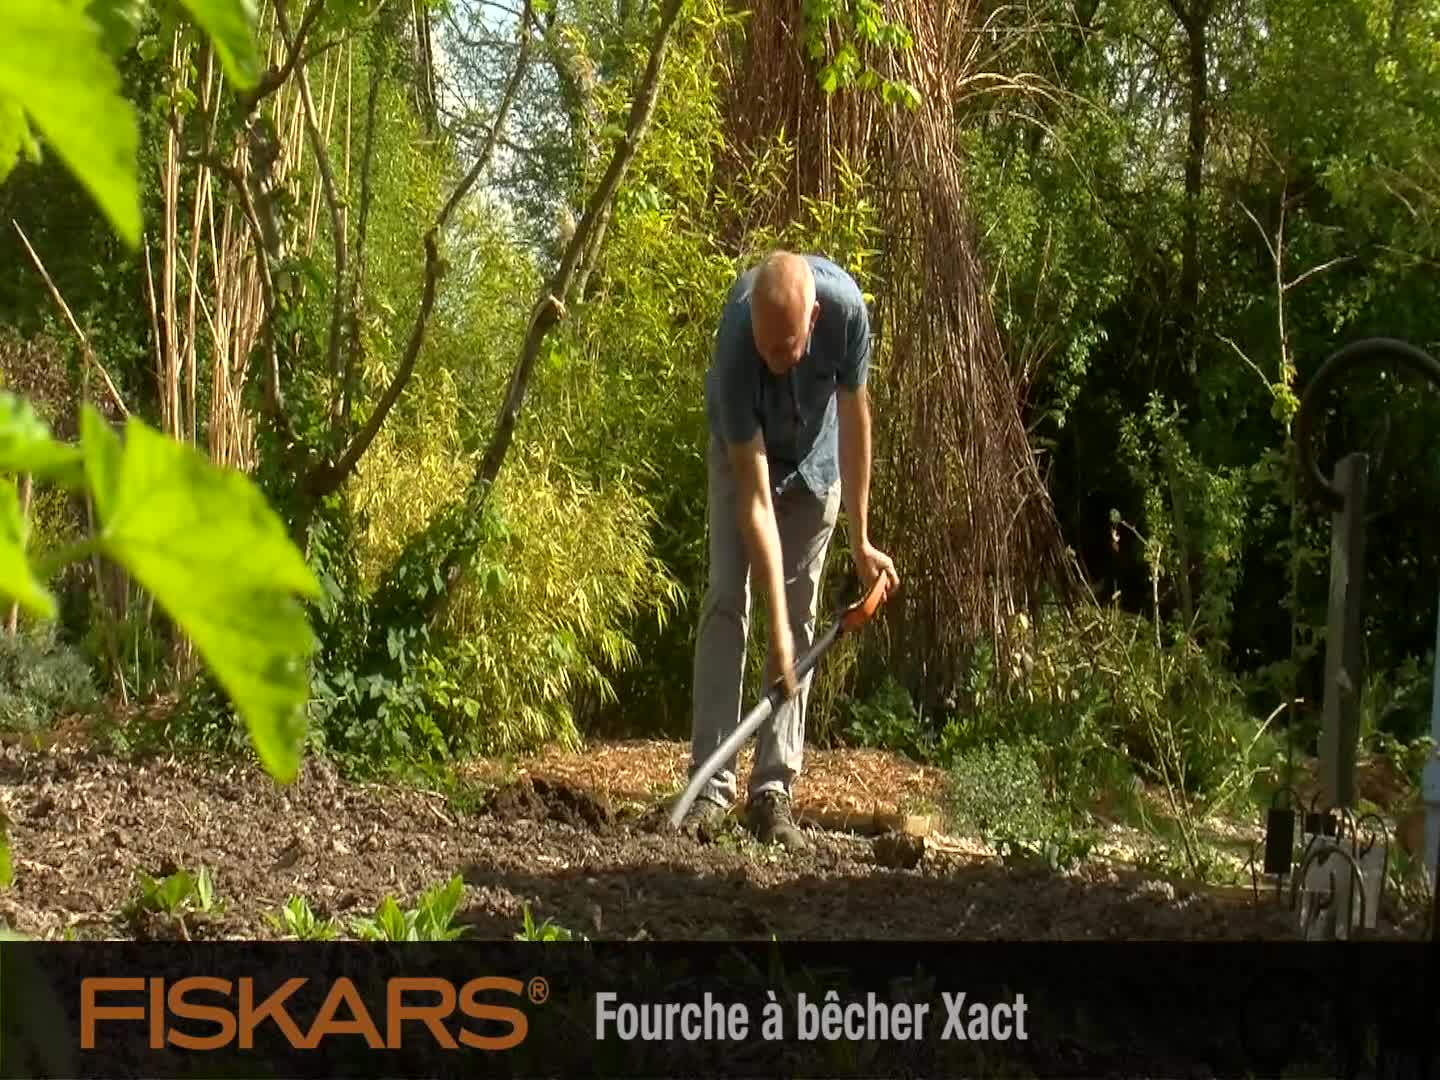 fourche b cher fiskars xact m t te en acier au bore outillage de jardin main achat. Black Bedroom Furniture Sets. Home Design Ideas